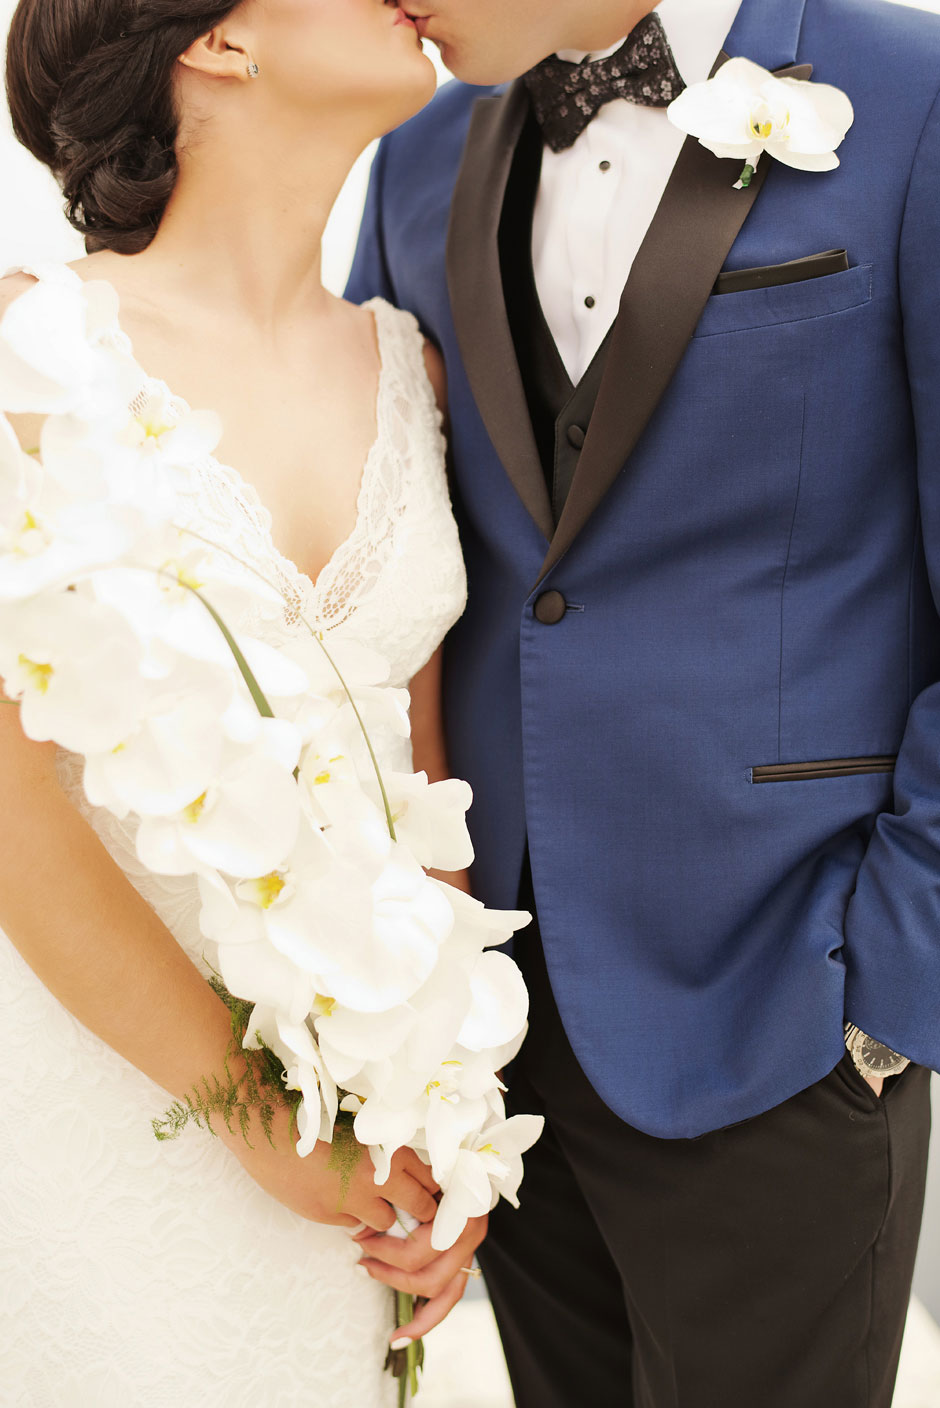 bridal-bouquet-and-boutonniere-with-an-elopement-couple-in-santorini-